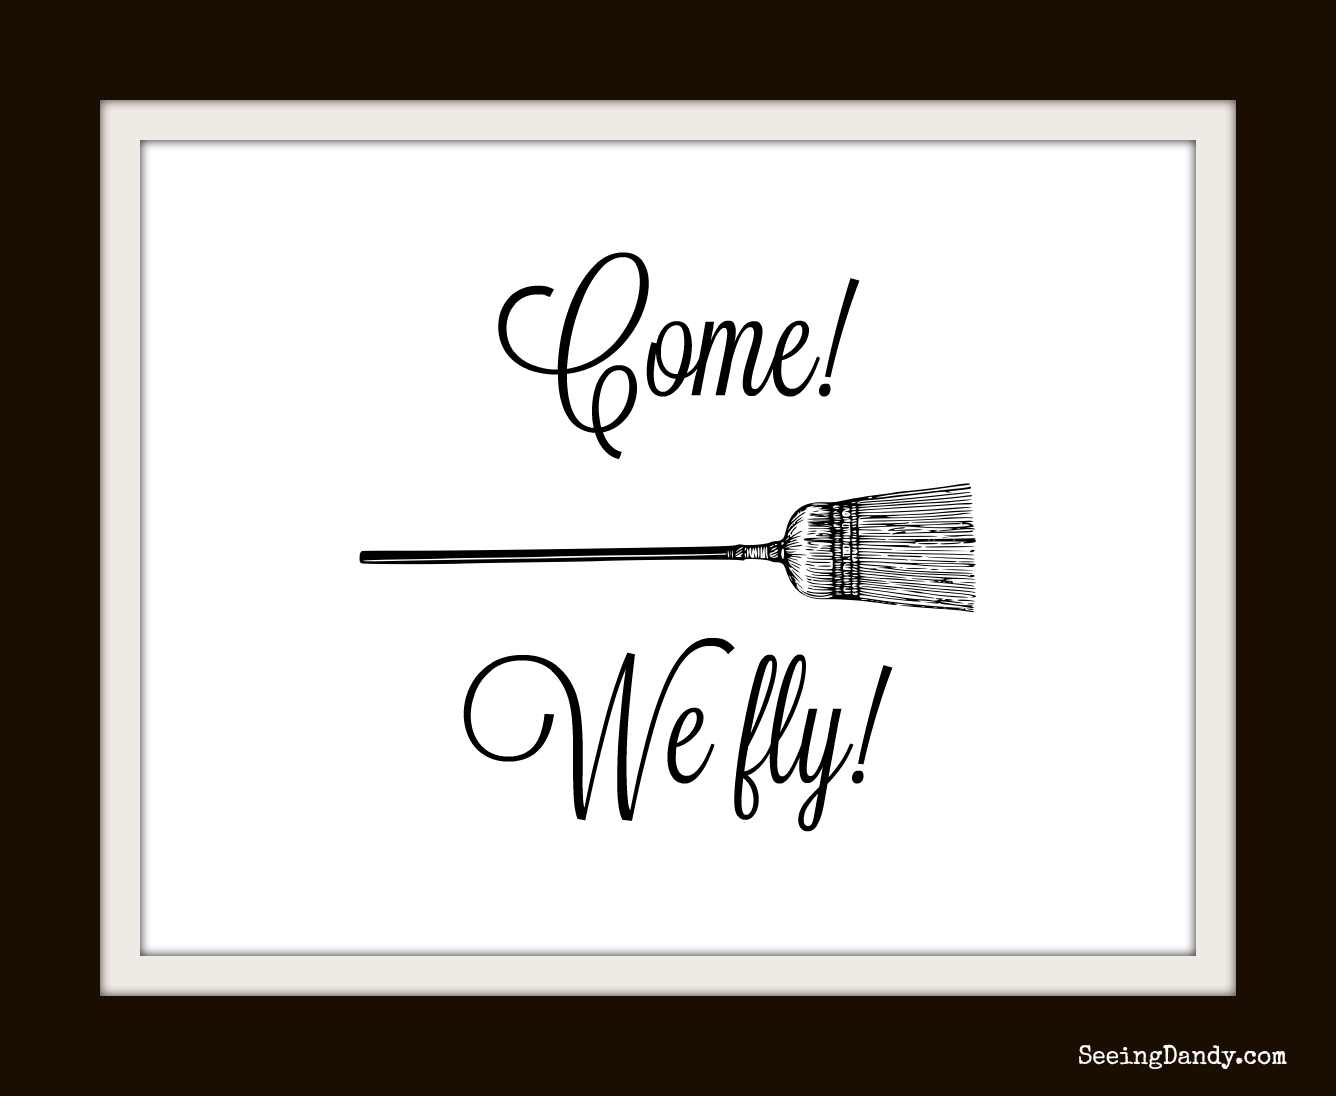 Come! We fly! Hocus Pocus broom printable with black picture frame.